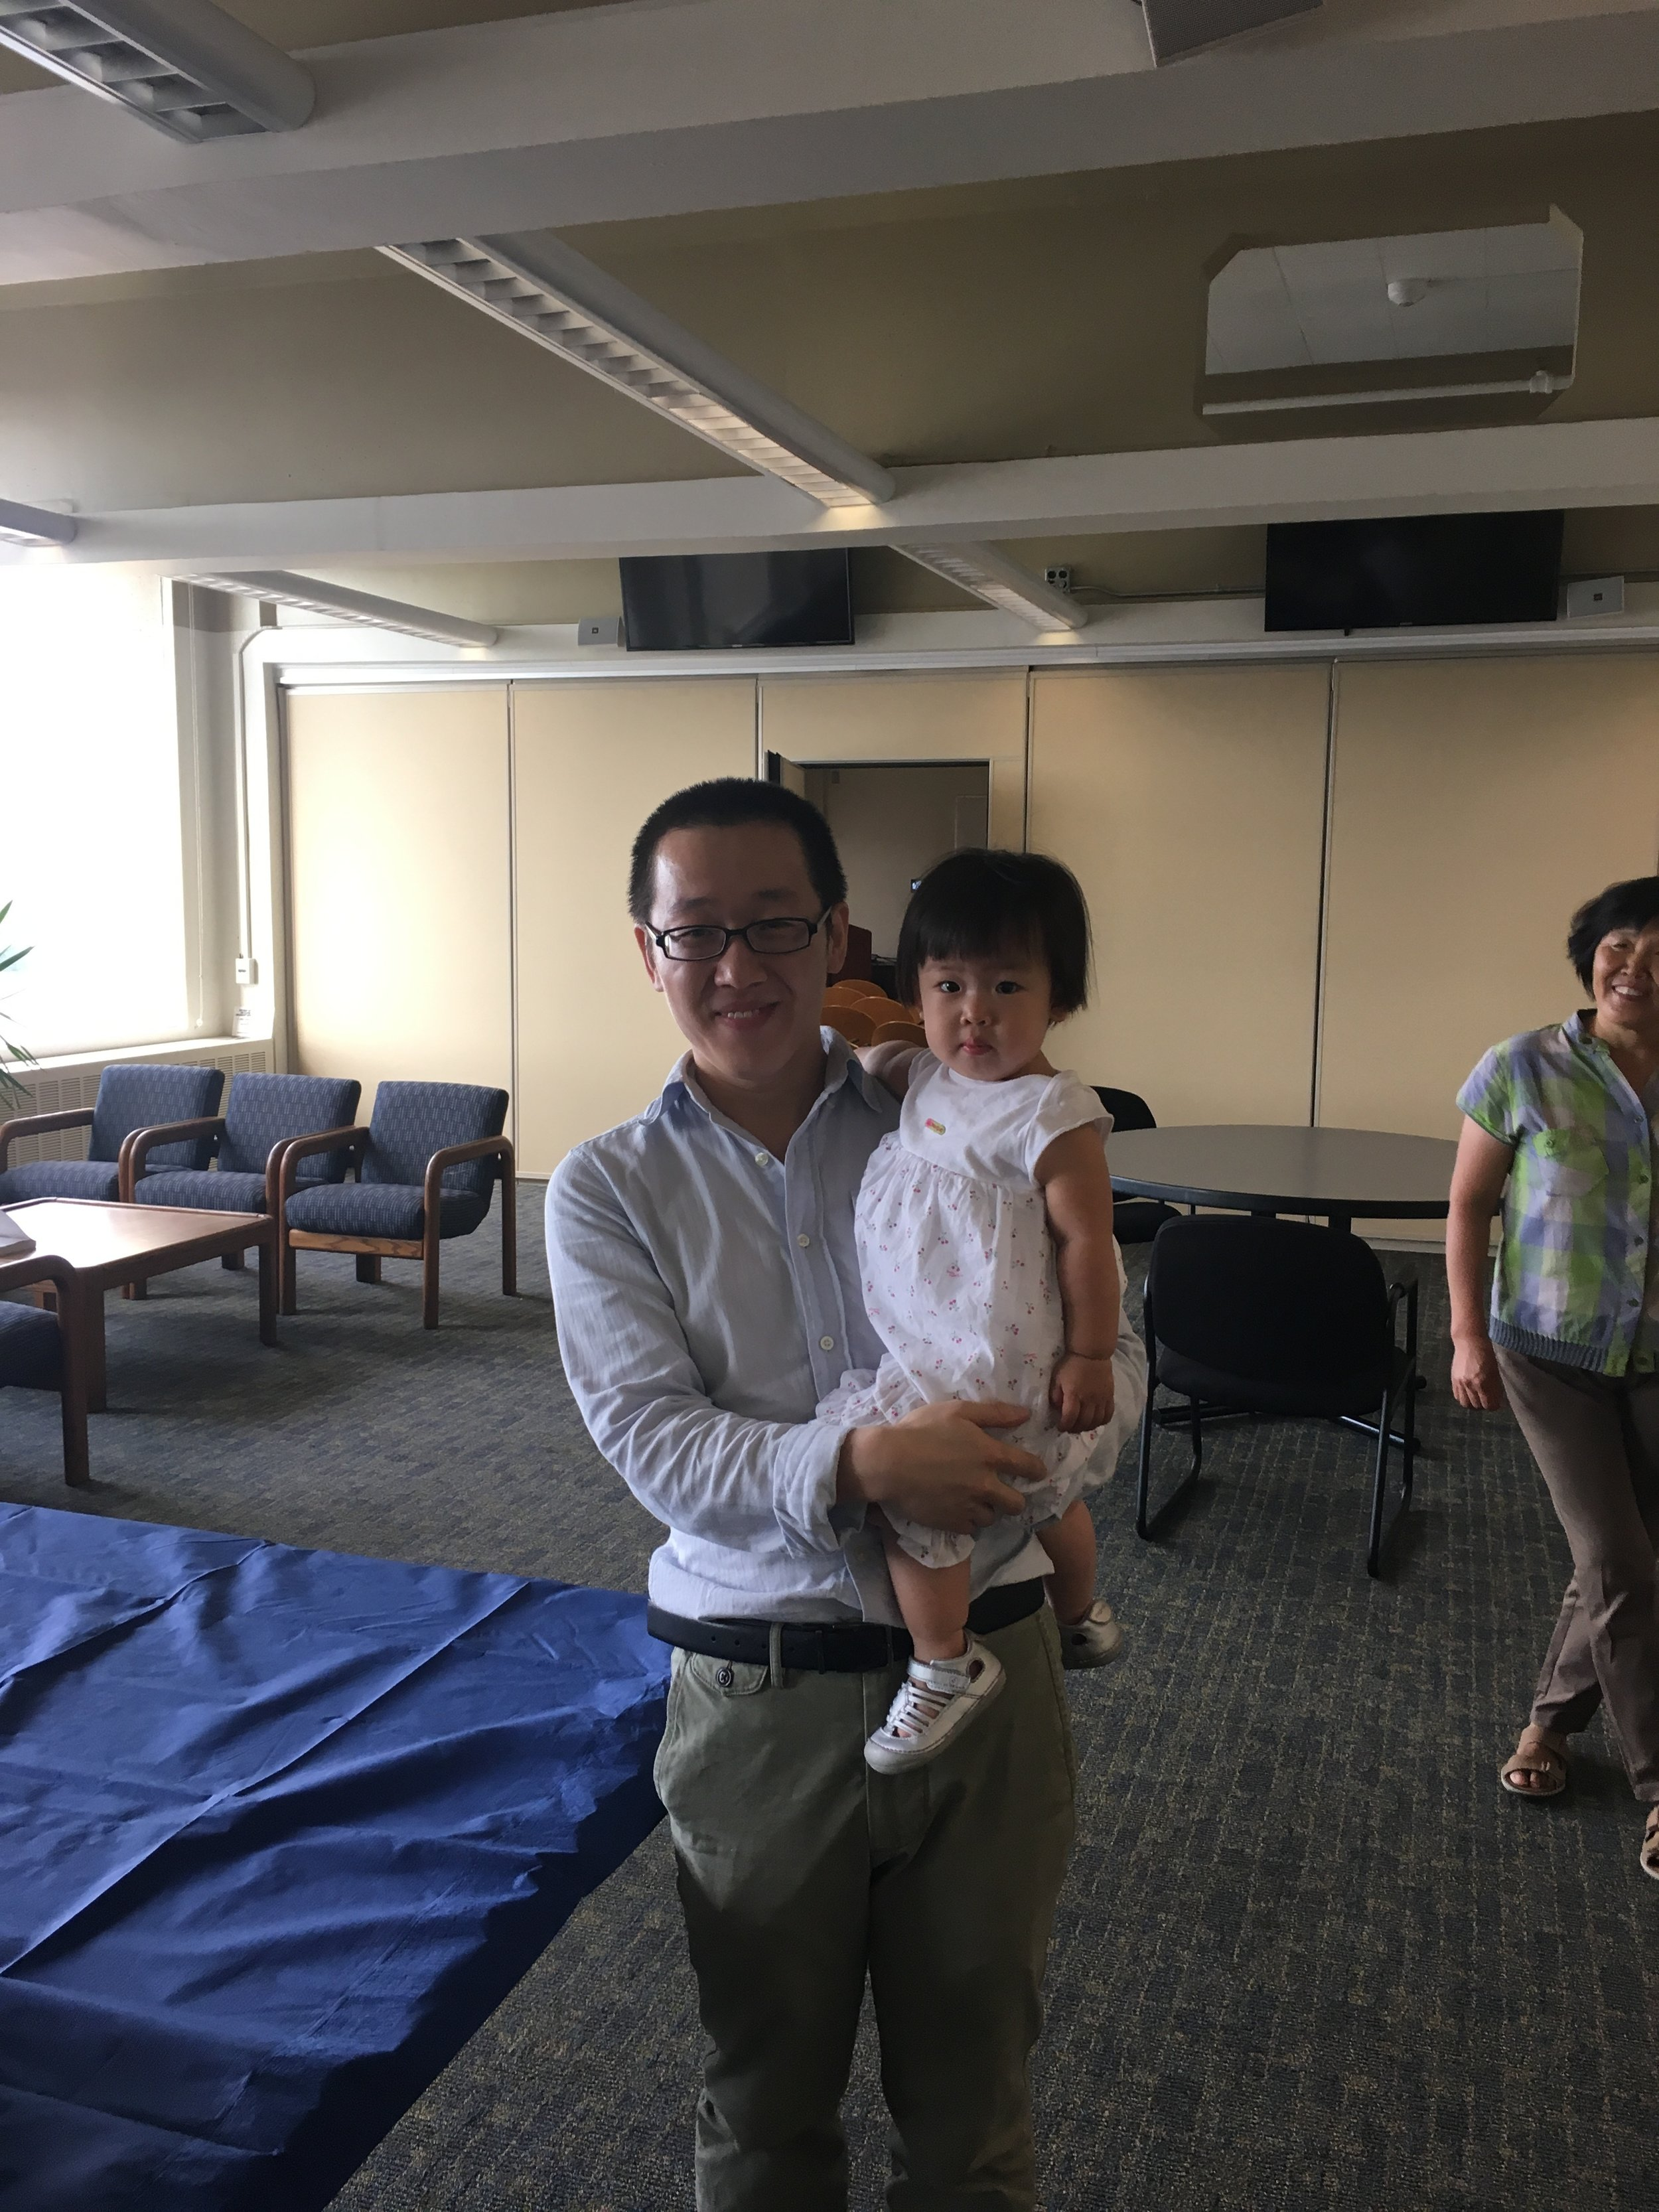 Dr. Shaojie Song and his daughter